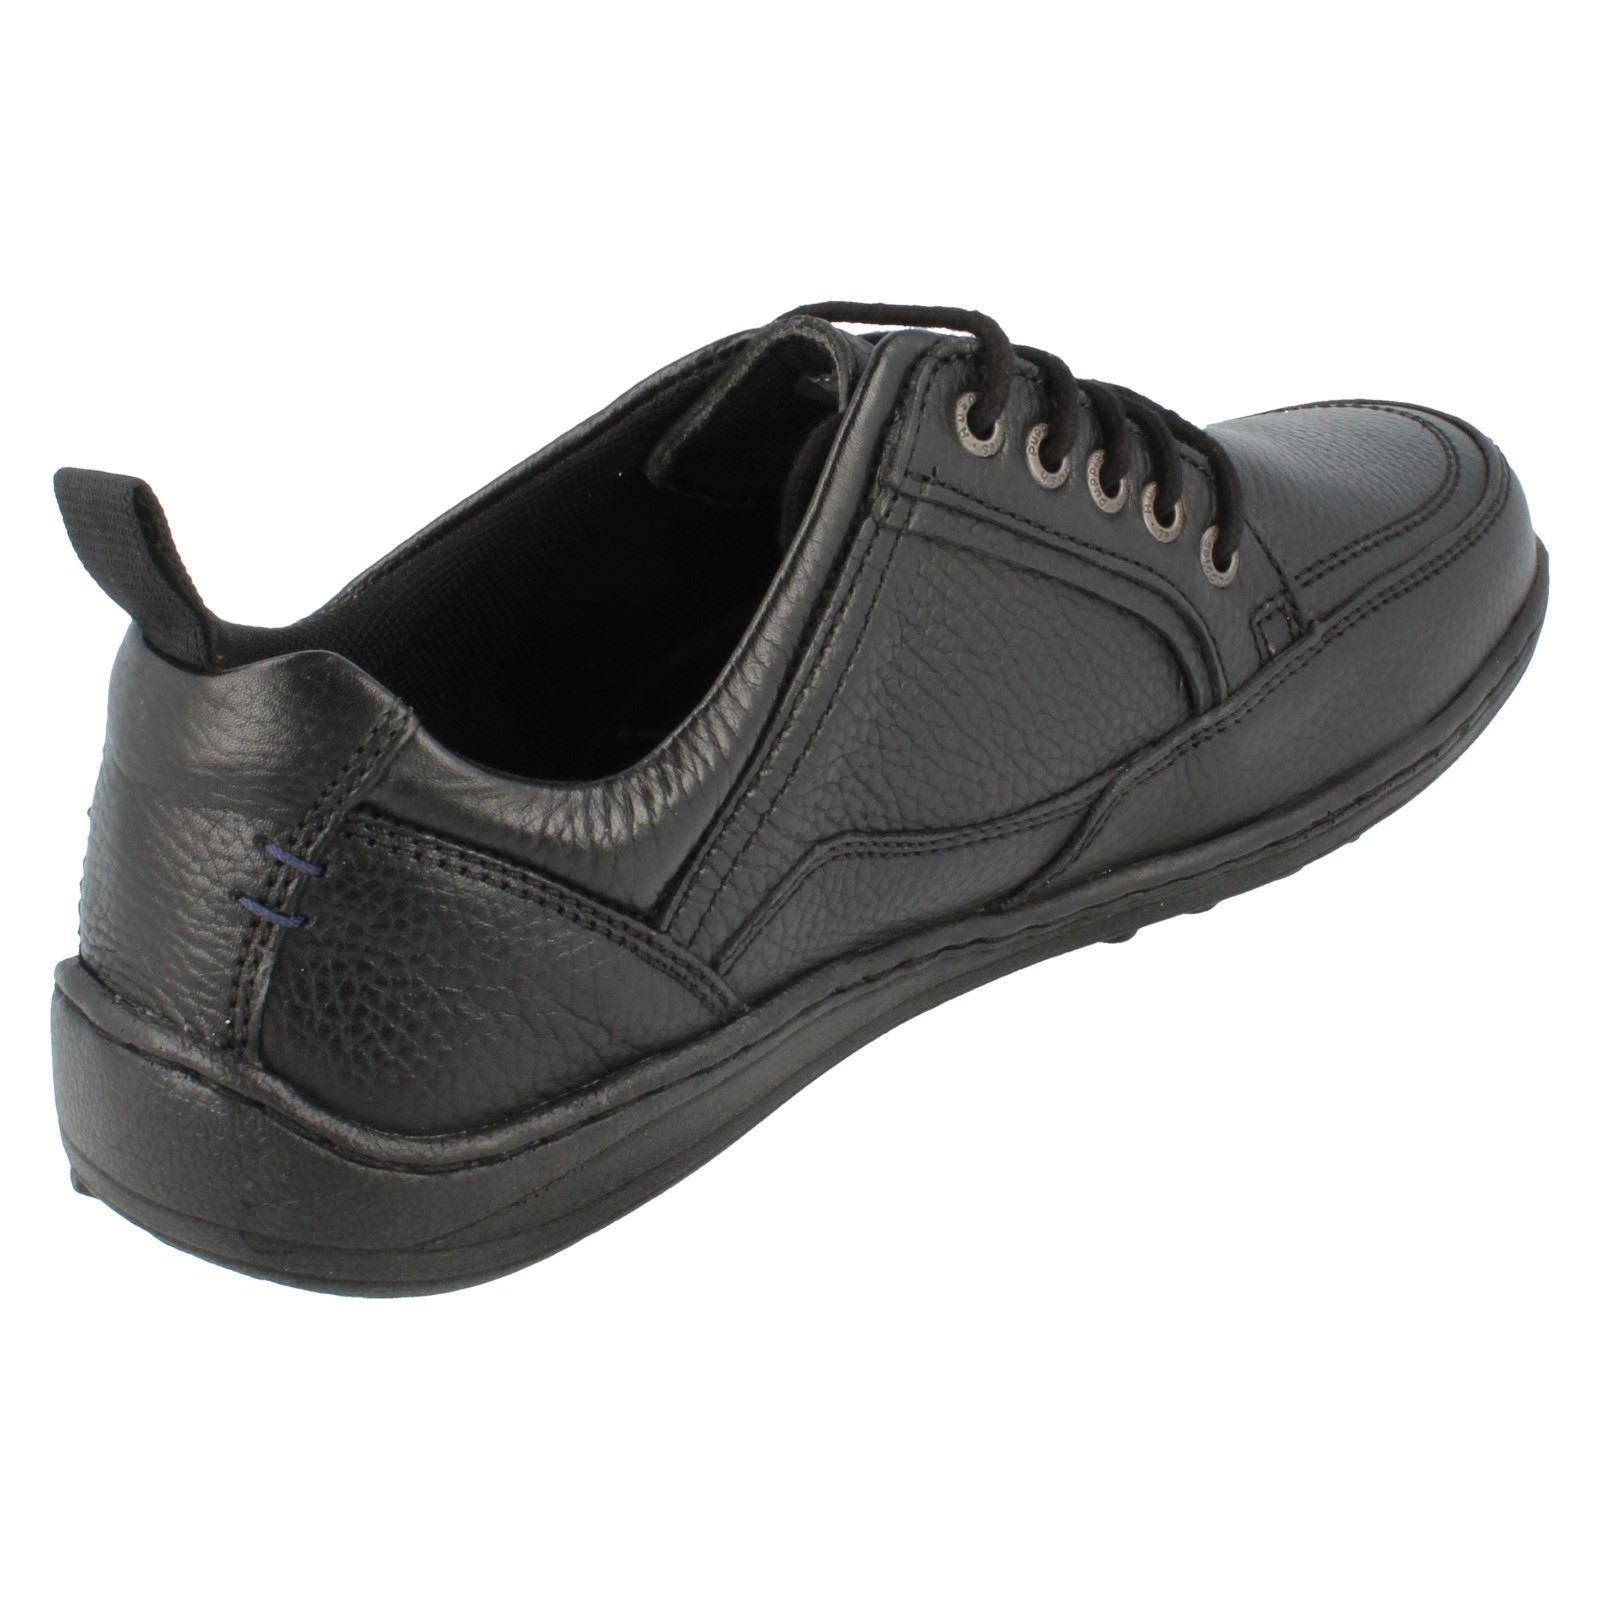 mens hush puppies lace up shoes the style belfast oxford